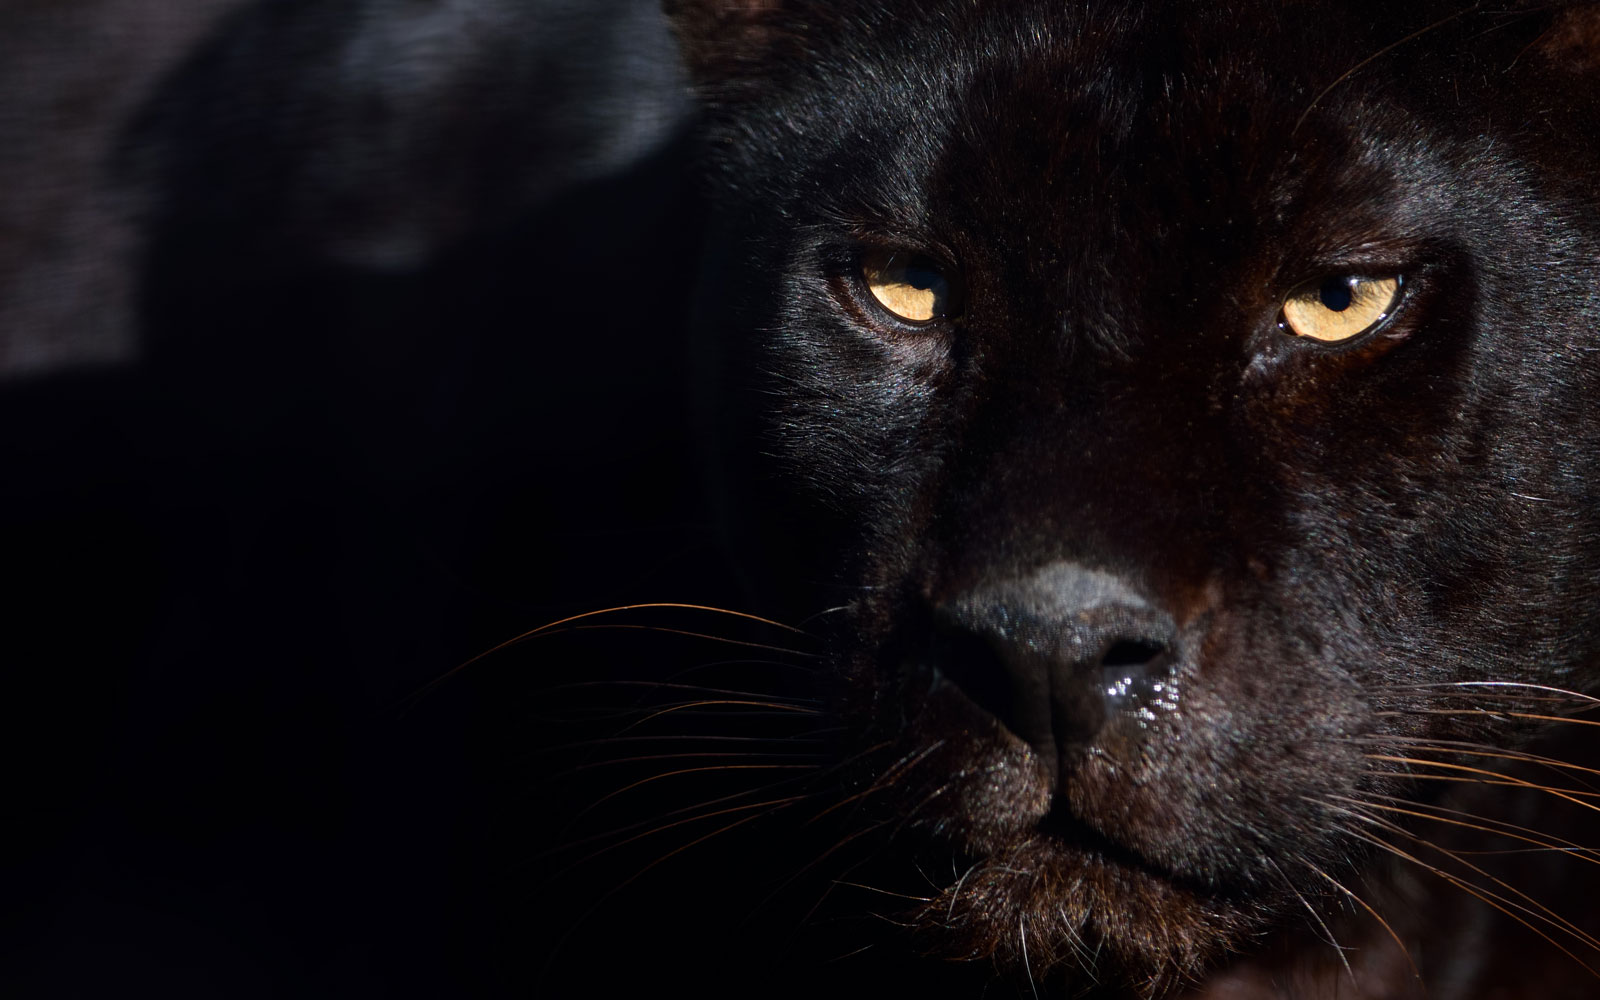 Rare African Black Leopard Photographed in the Wild for the First Time in a Century